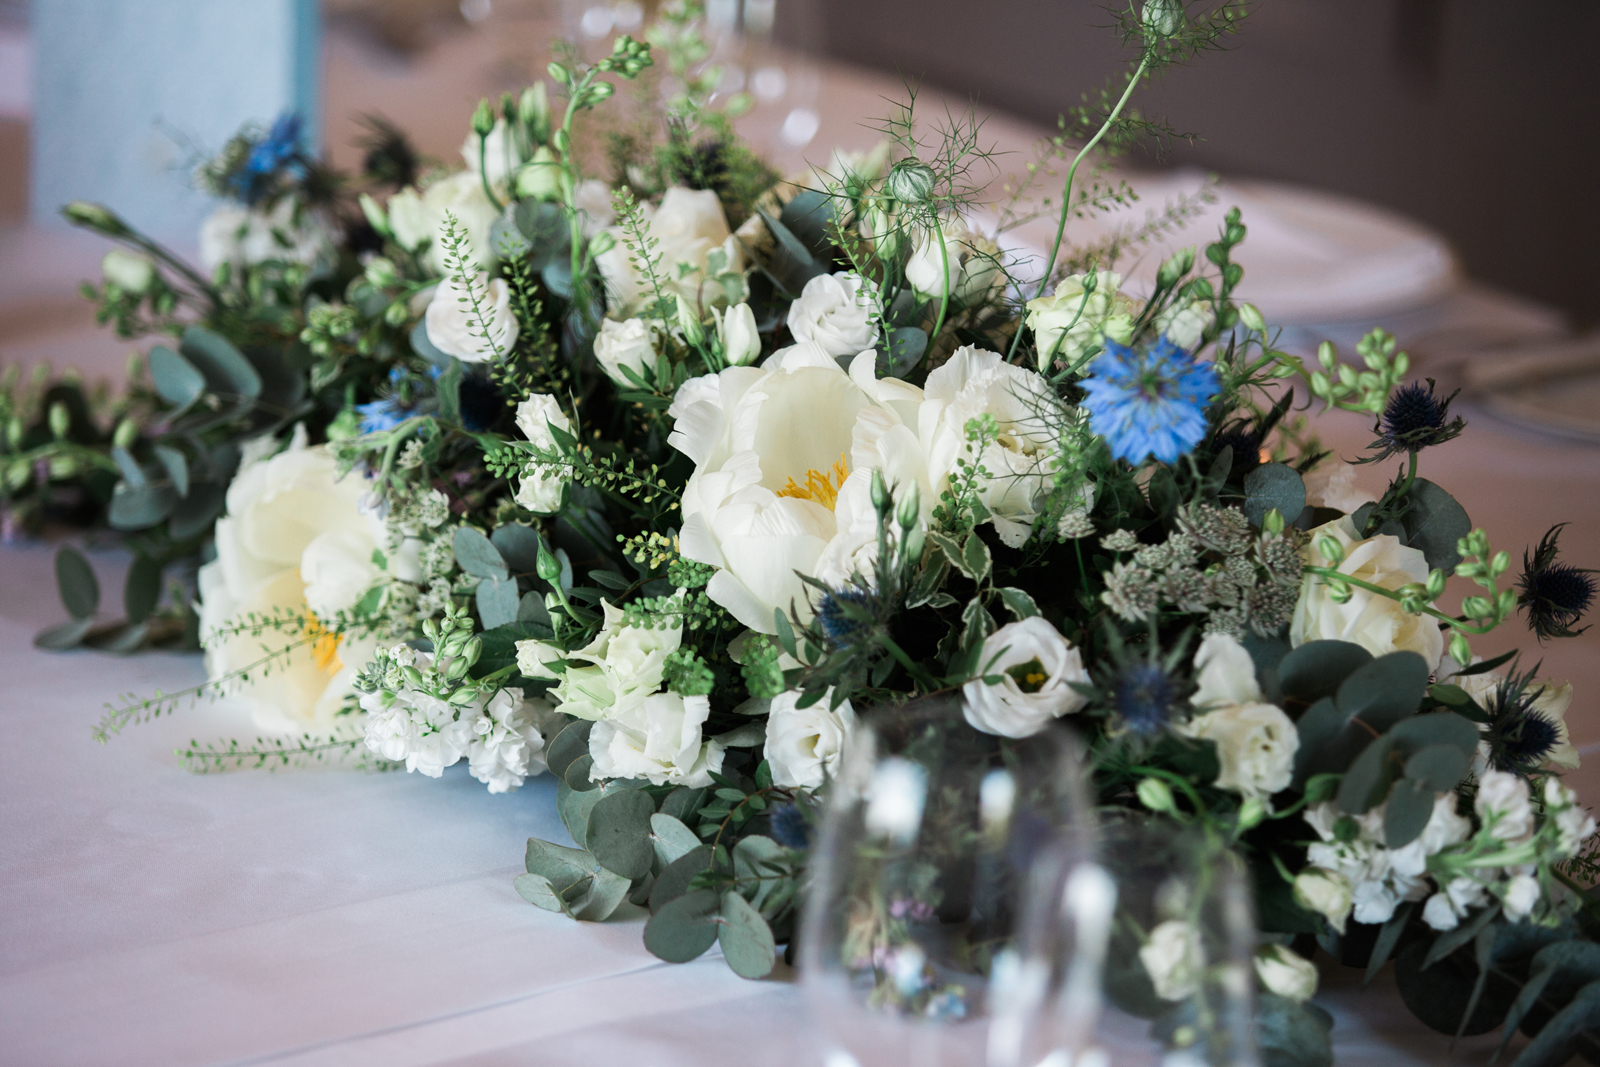 Wedding flowers - centerpiece